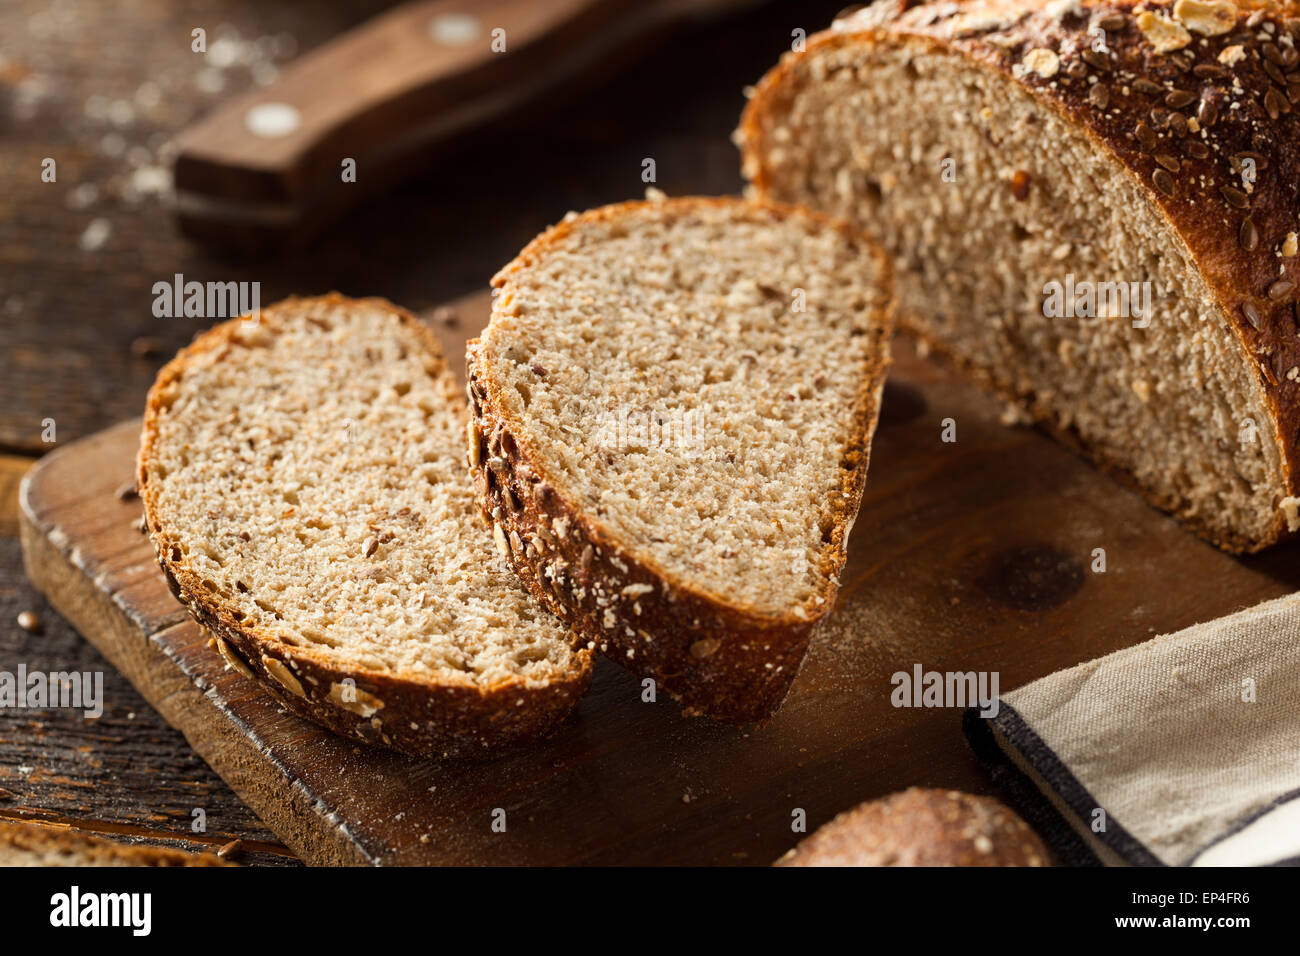 Organic Homemade Whole Wheat Bread Ready to Eat - Stock Image